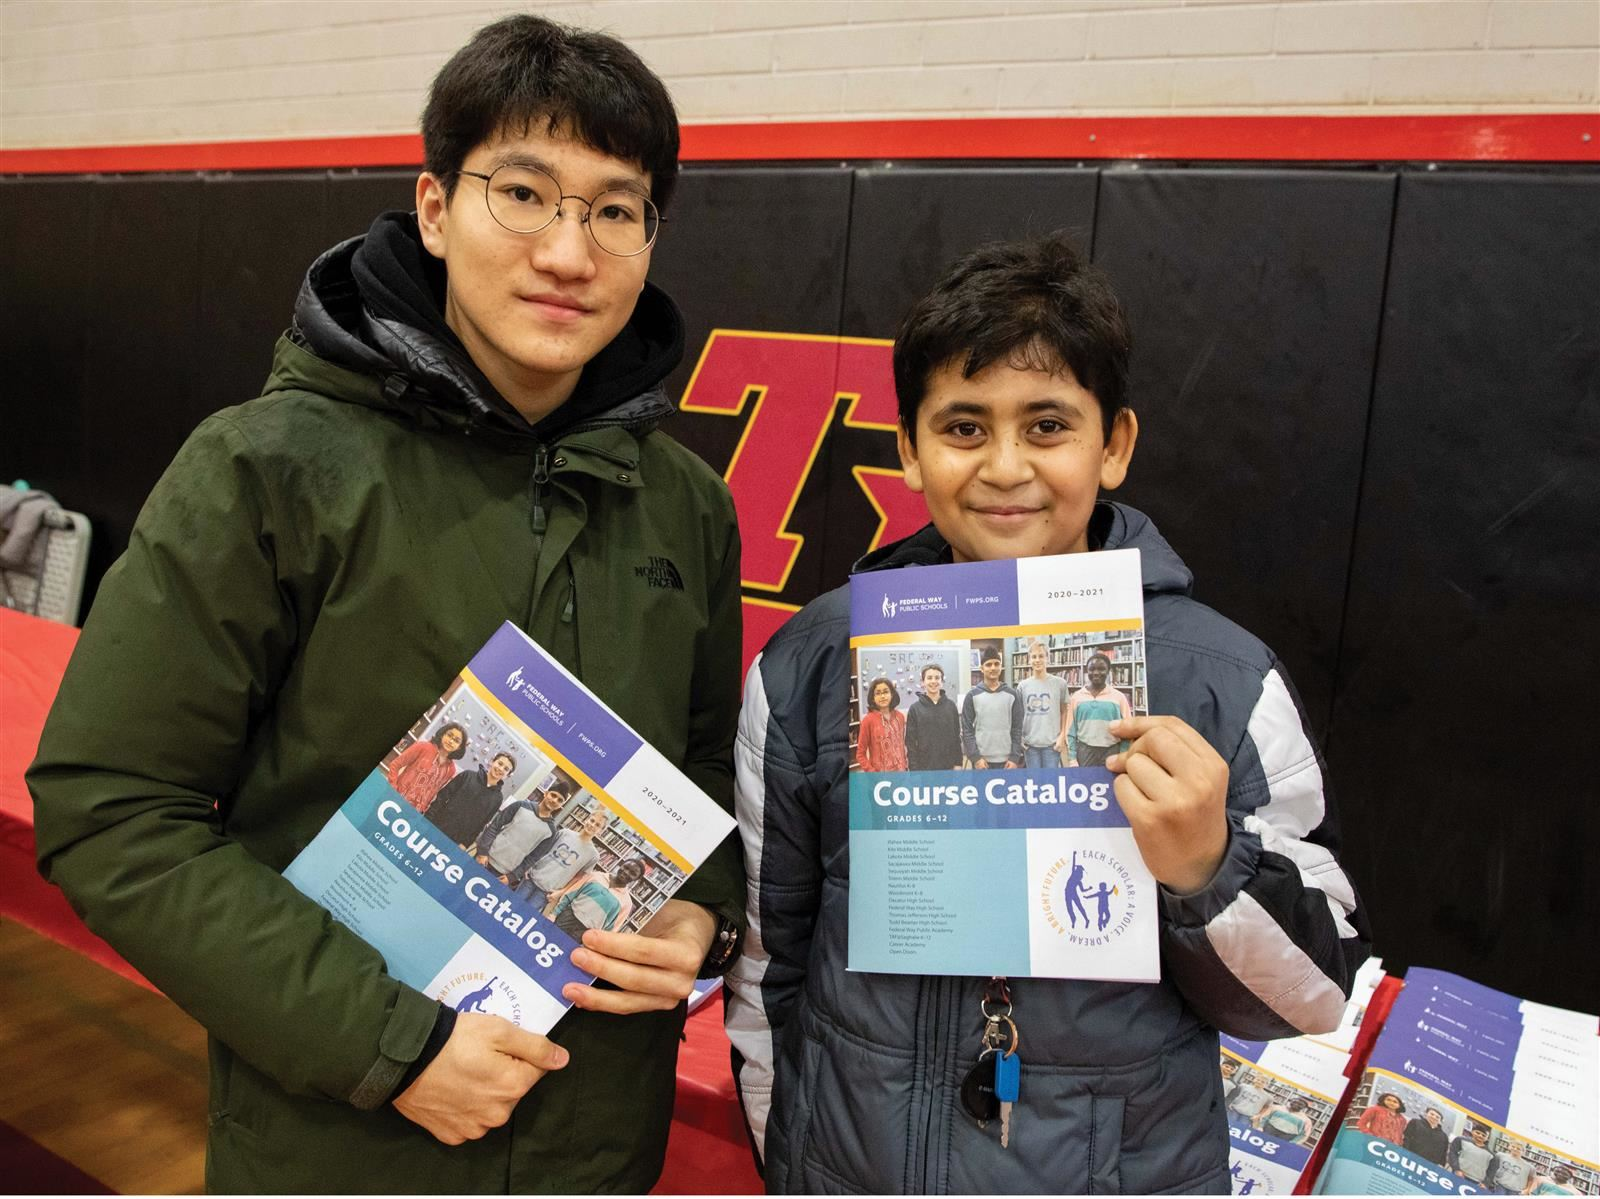 Two Boys holding planning nights catalog